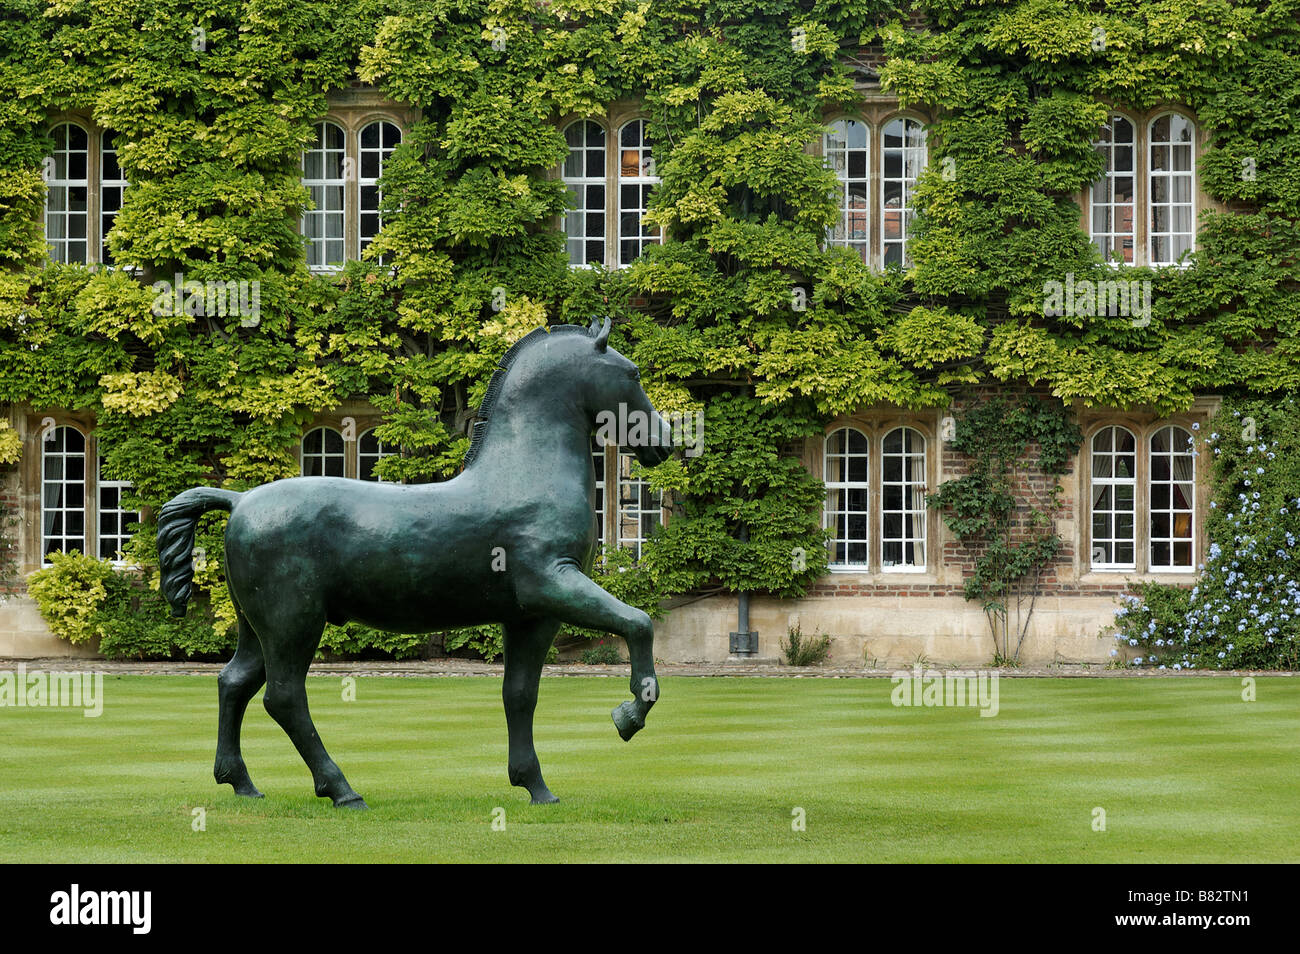 A sculpture of a horse on the lawn of Jesus College Cambridge - Stock Image